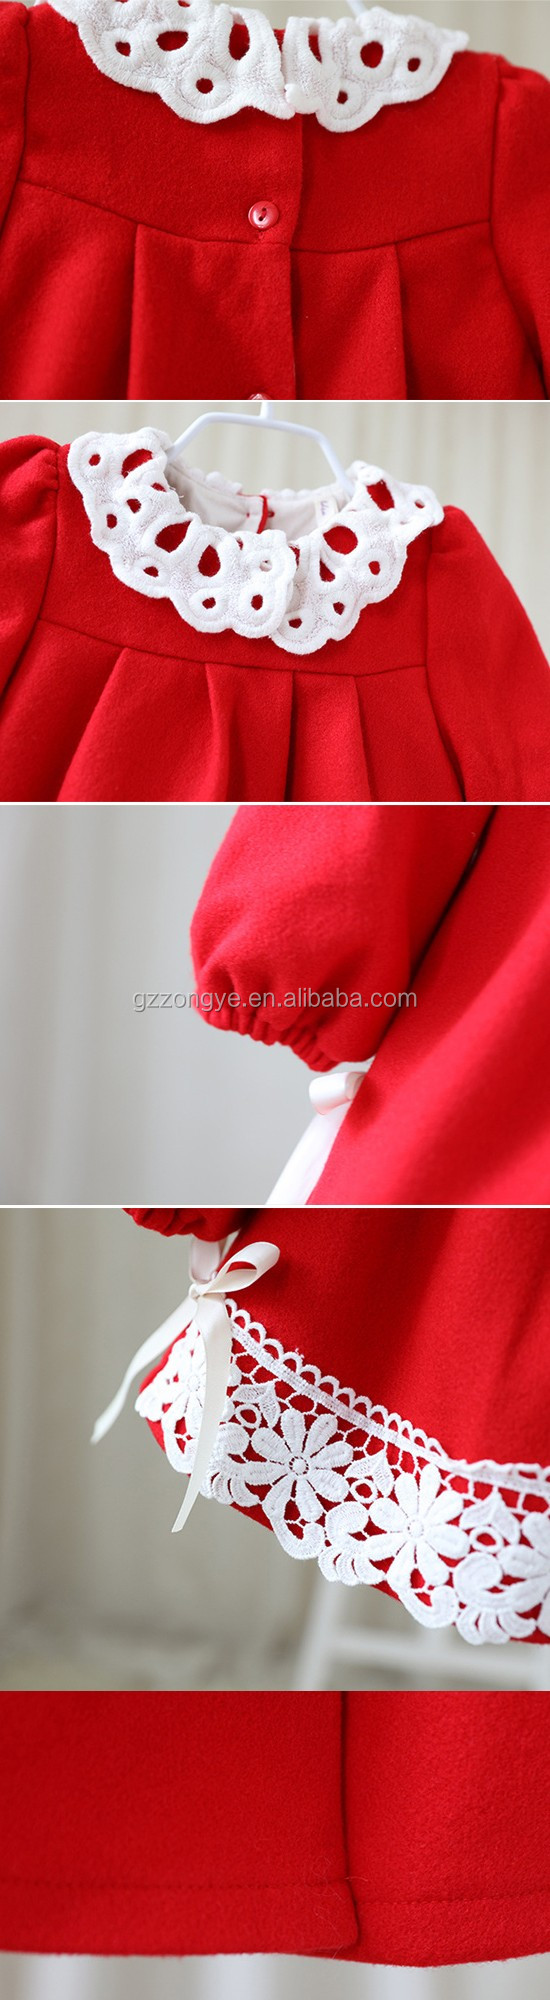 Wholesale children boutique lace silk winter coat girl baby red coat